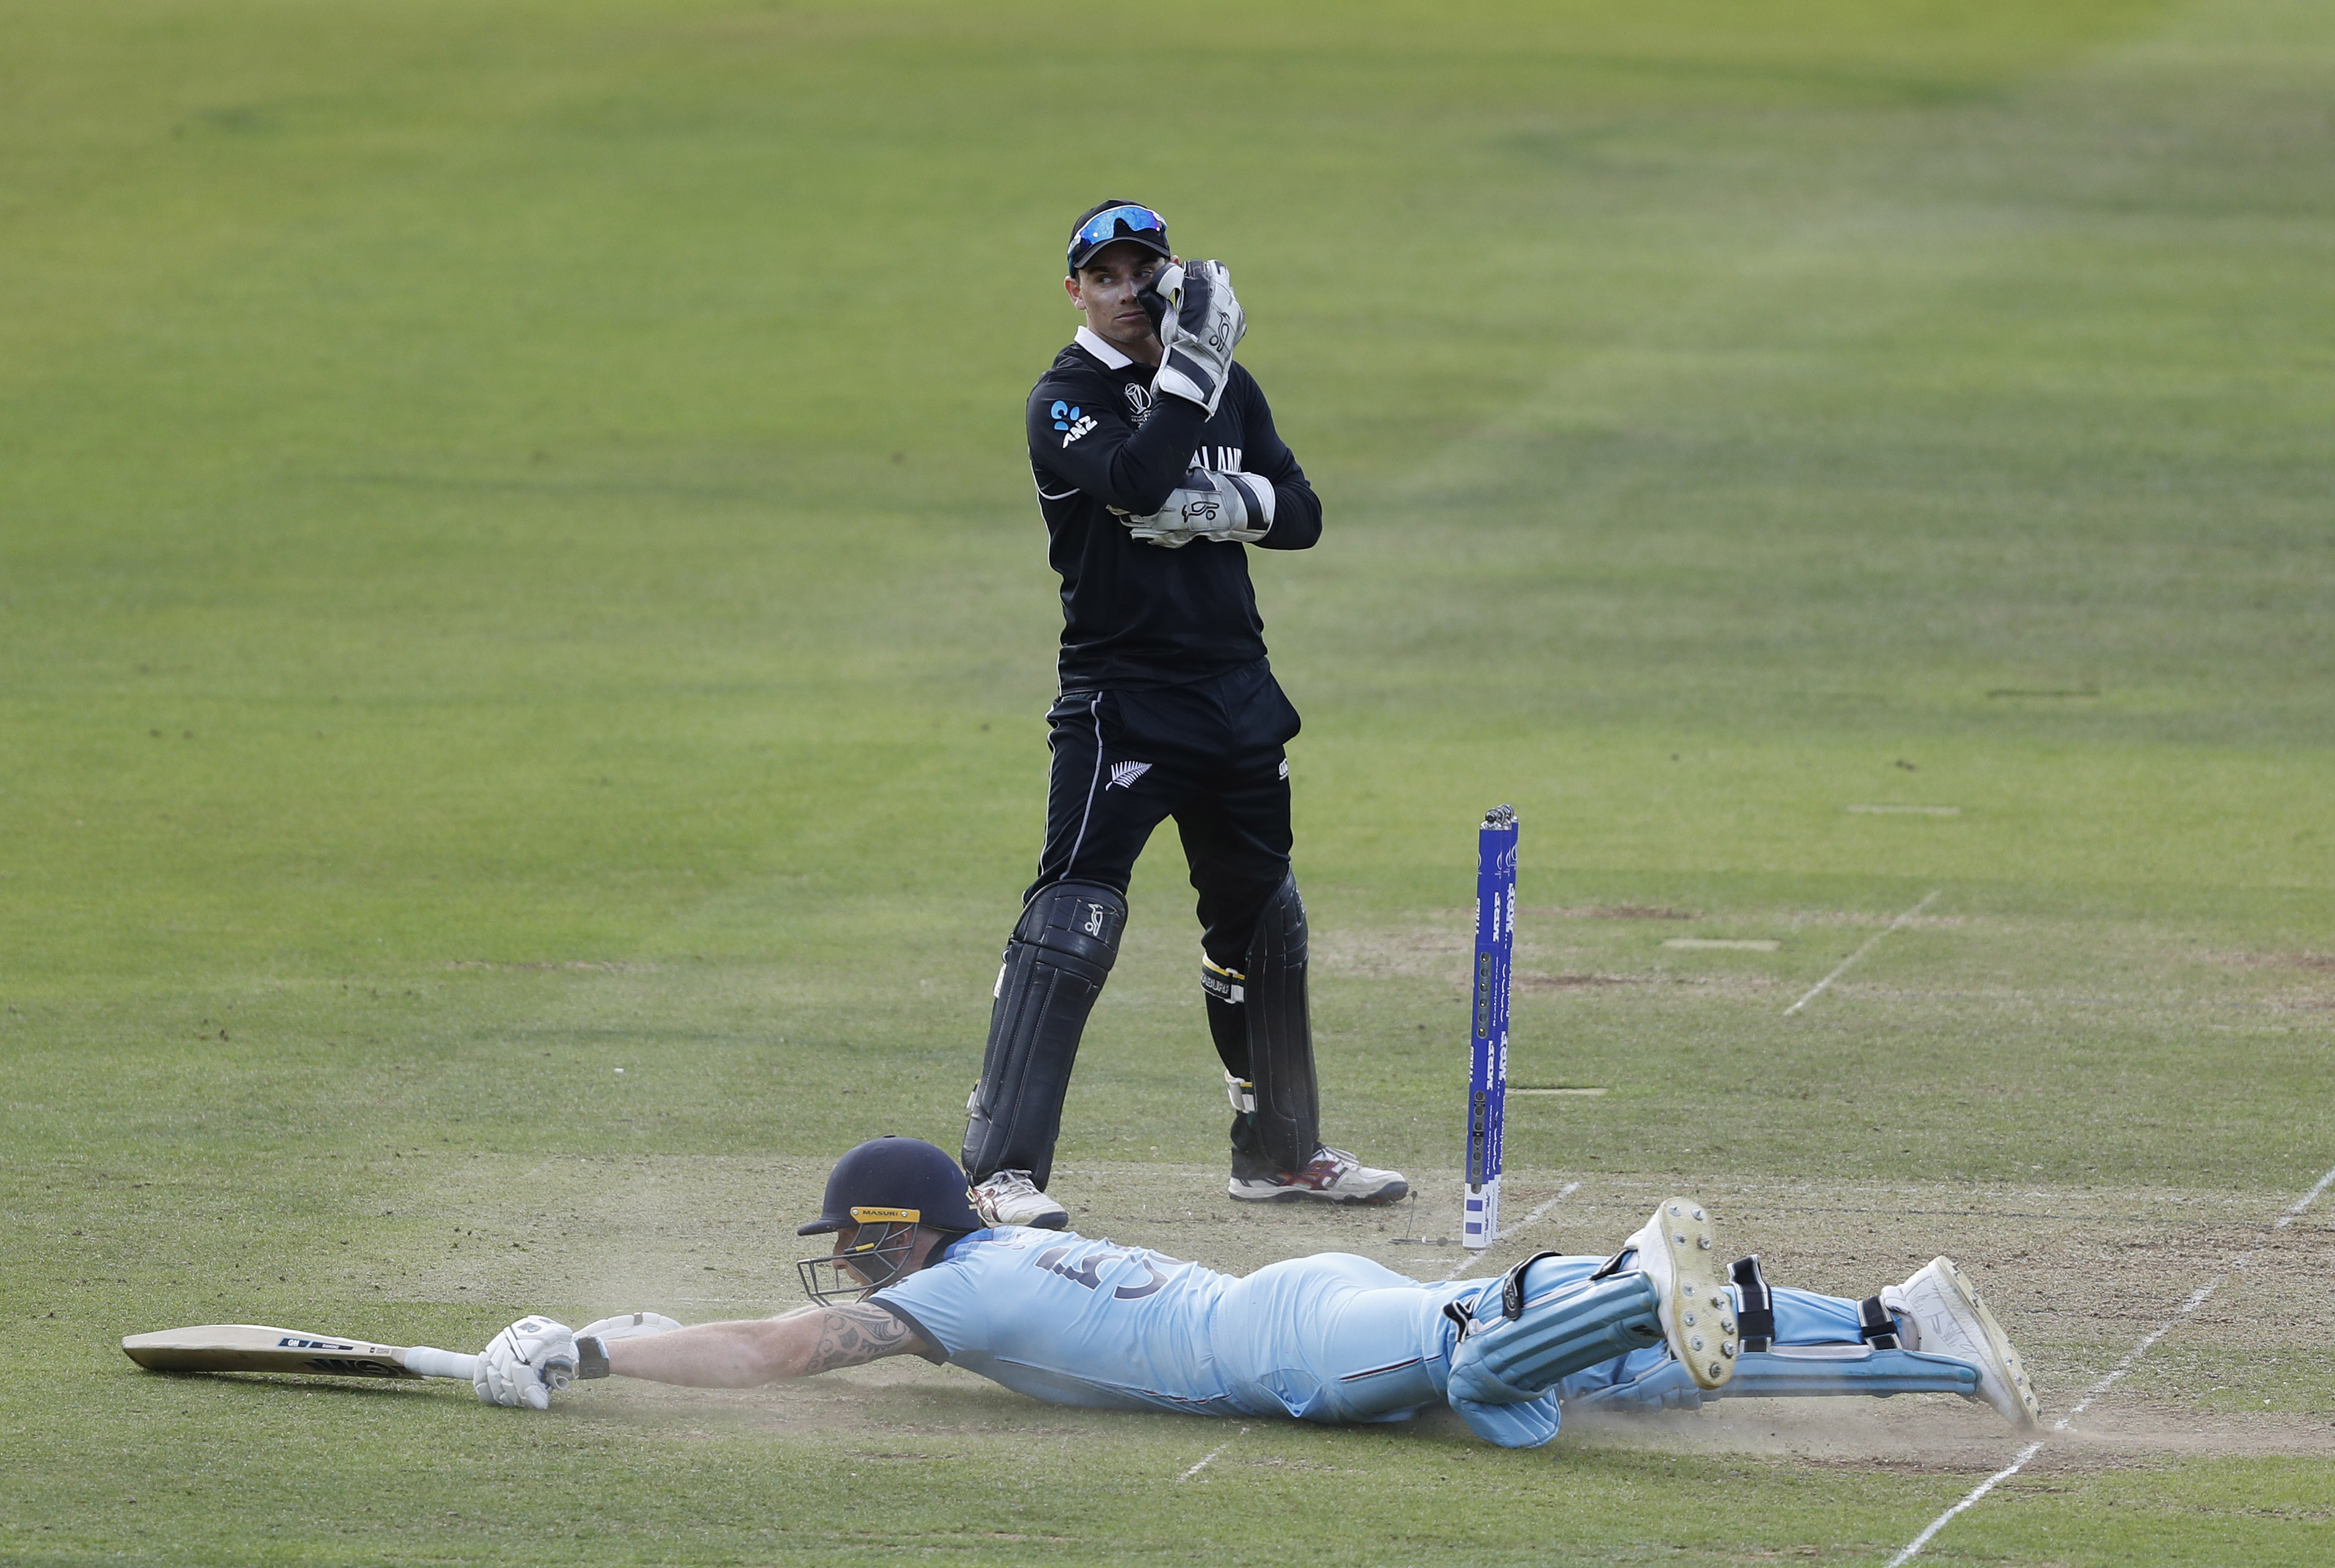 Stokes wasn't going to take another run but the ball rolled for a four. Image: PA Images